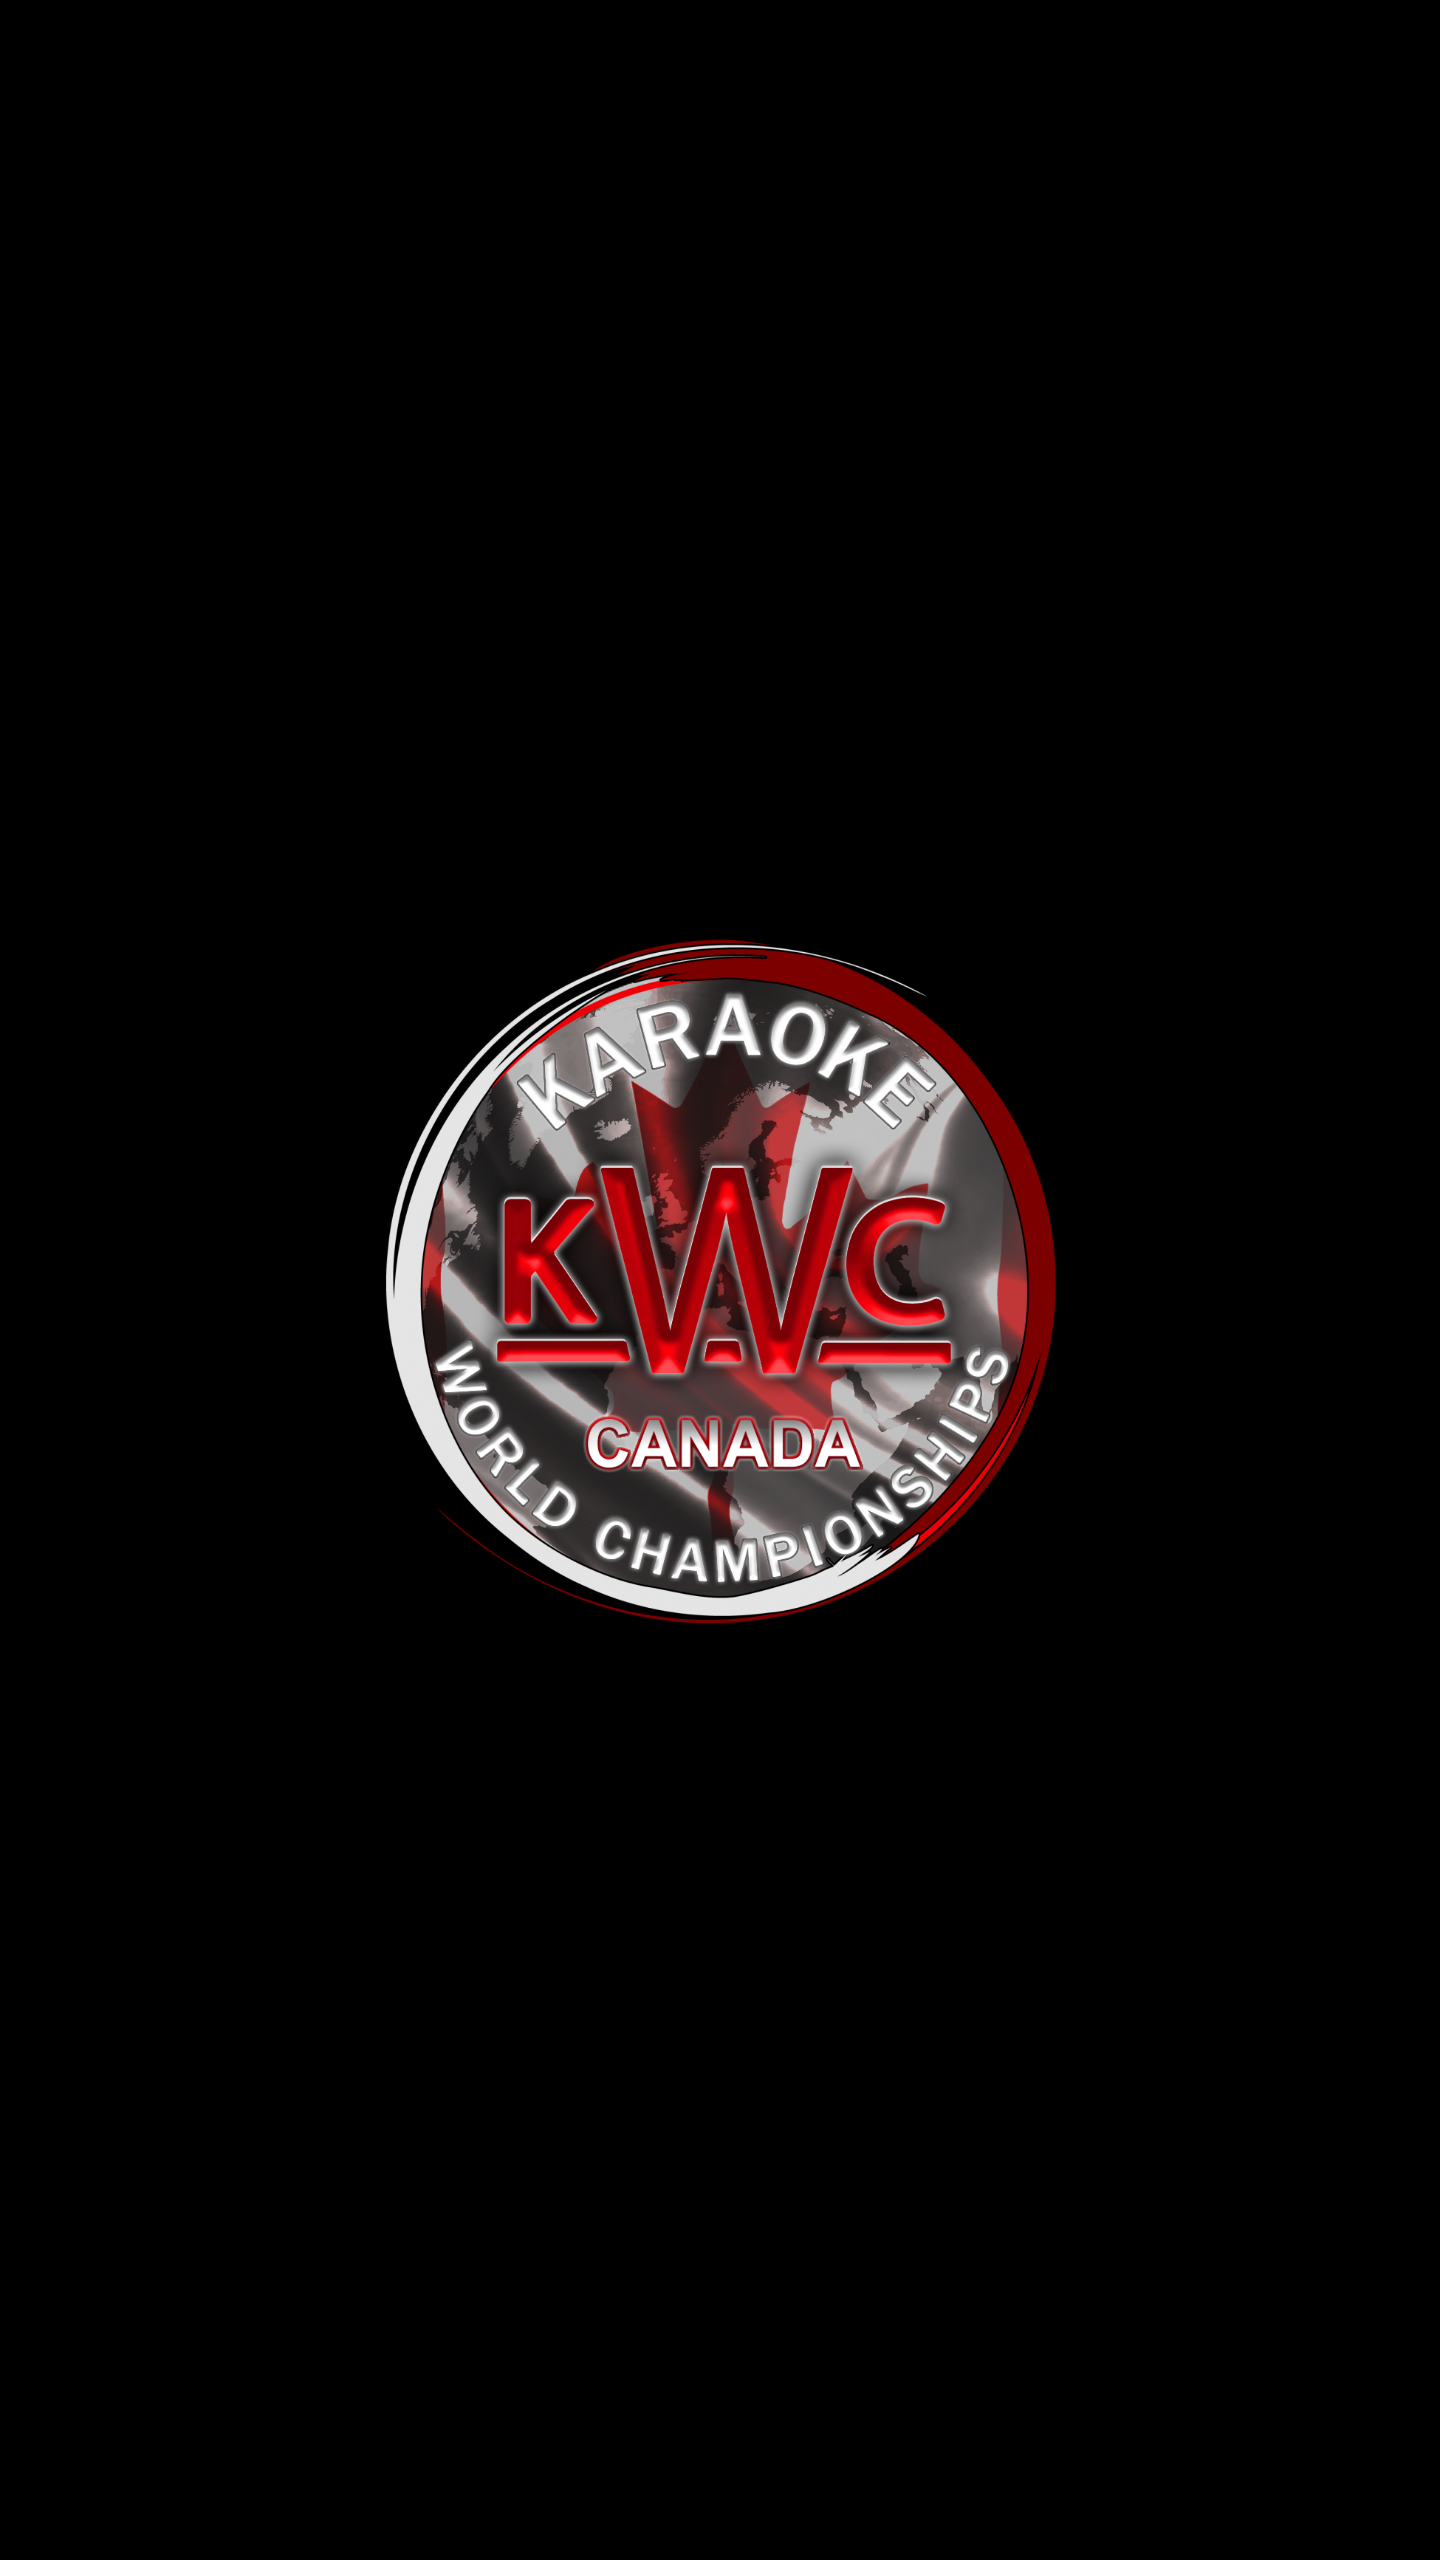 KWC BC 2019 Provincial Finals | Buy Tickets in Maple Ridge